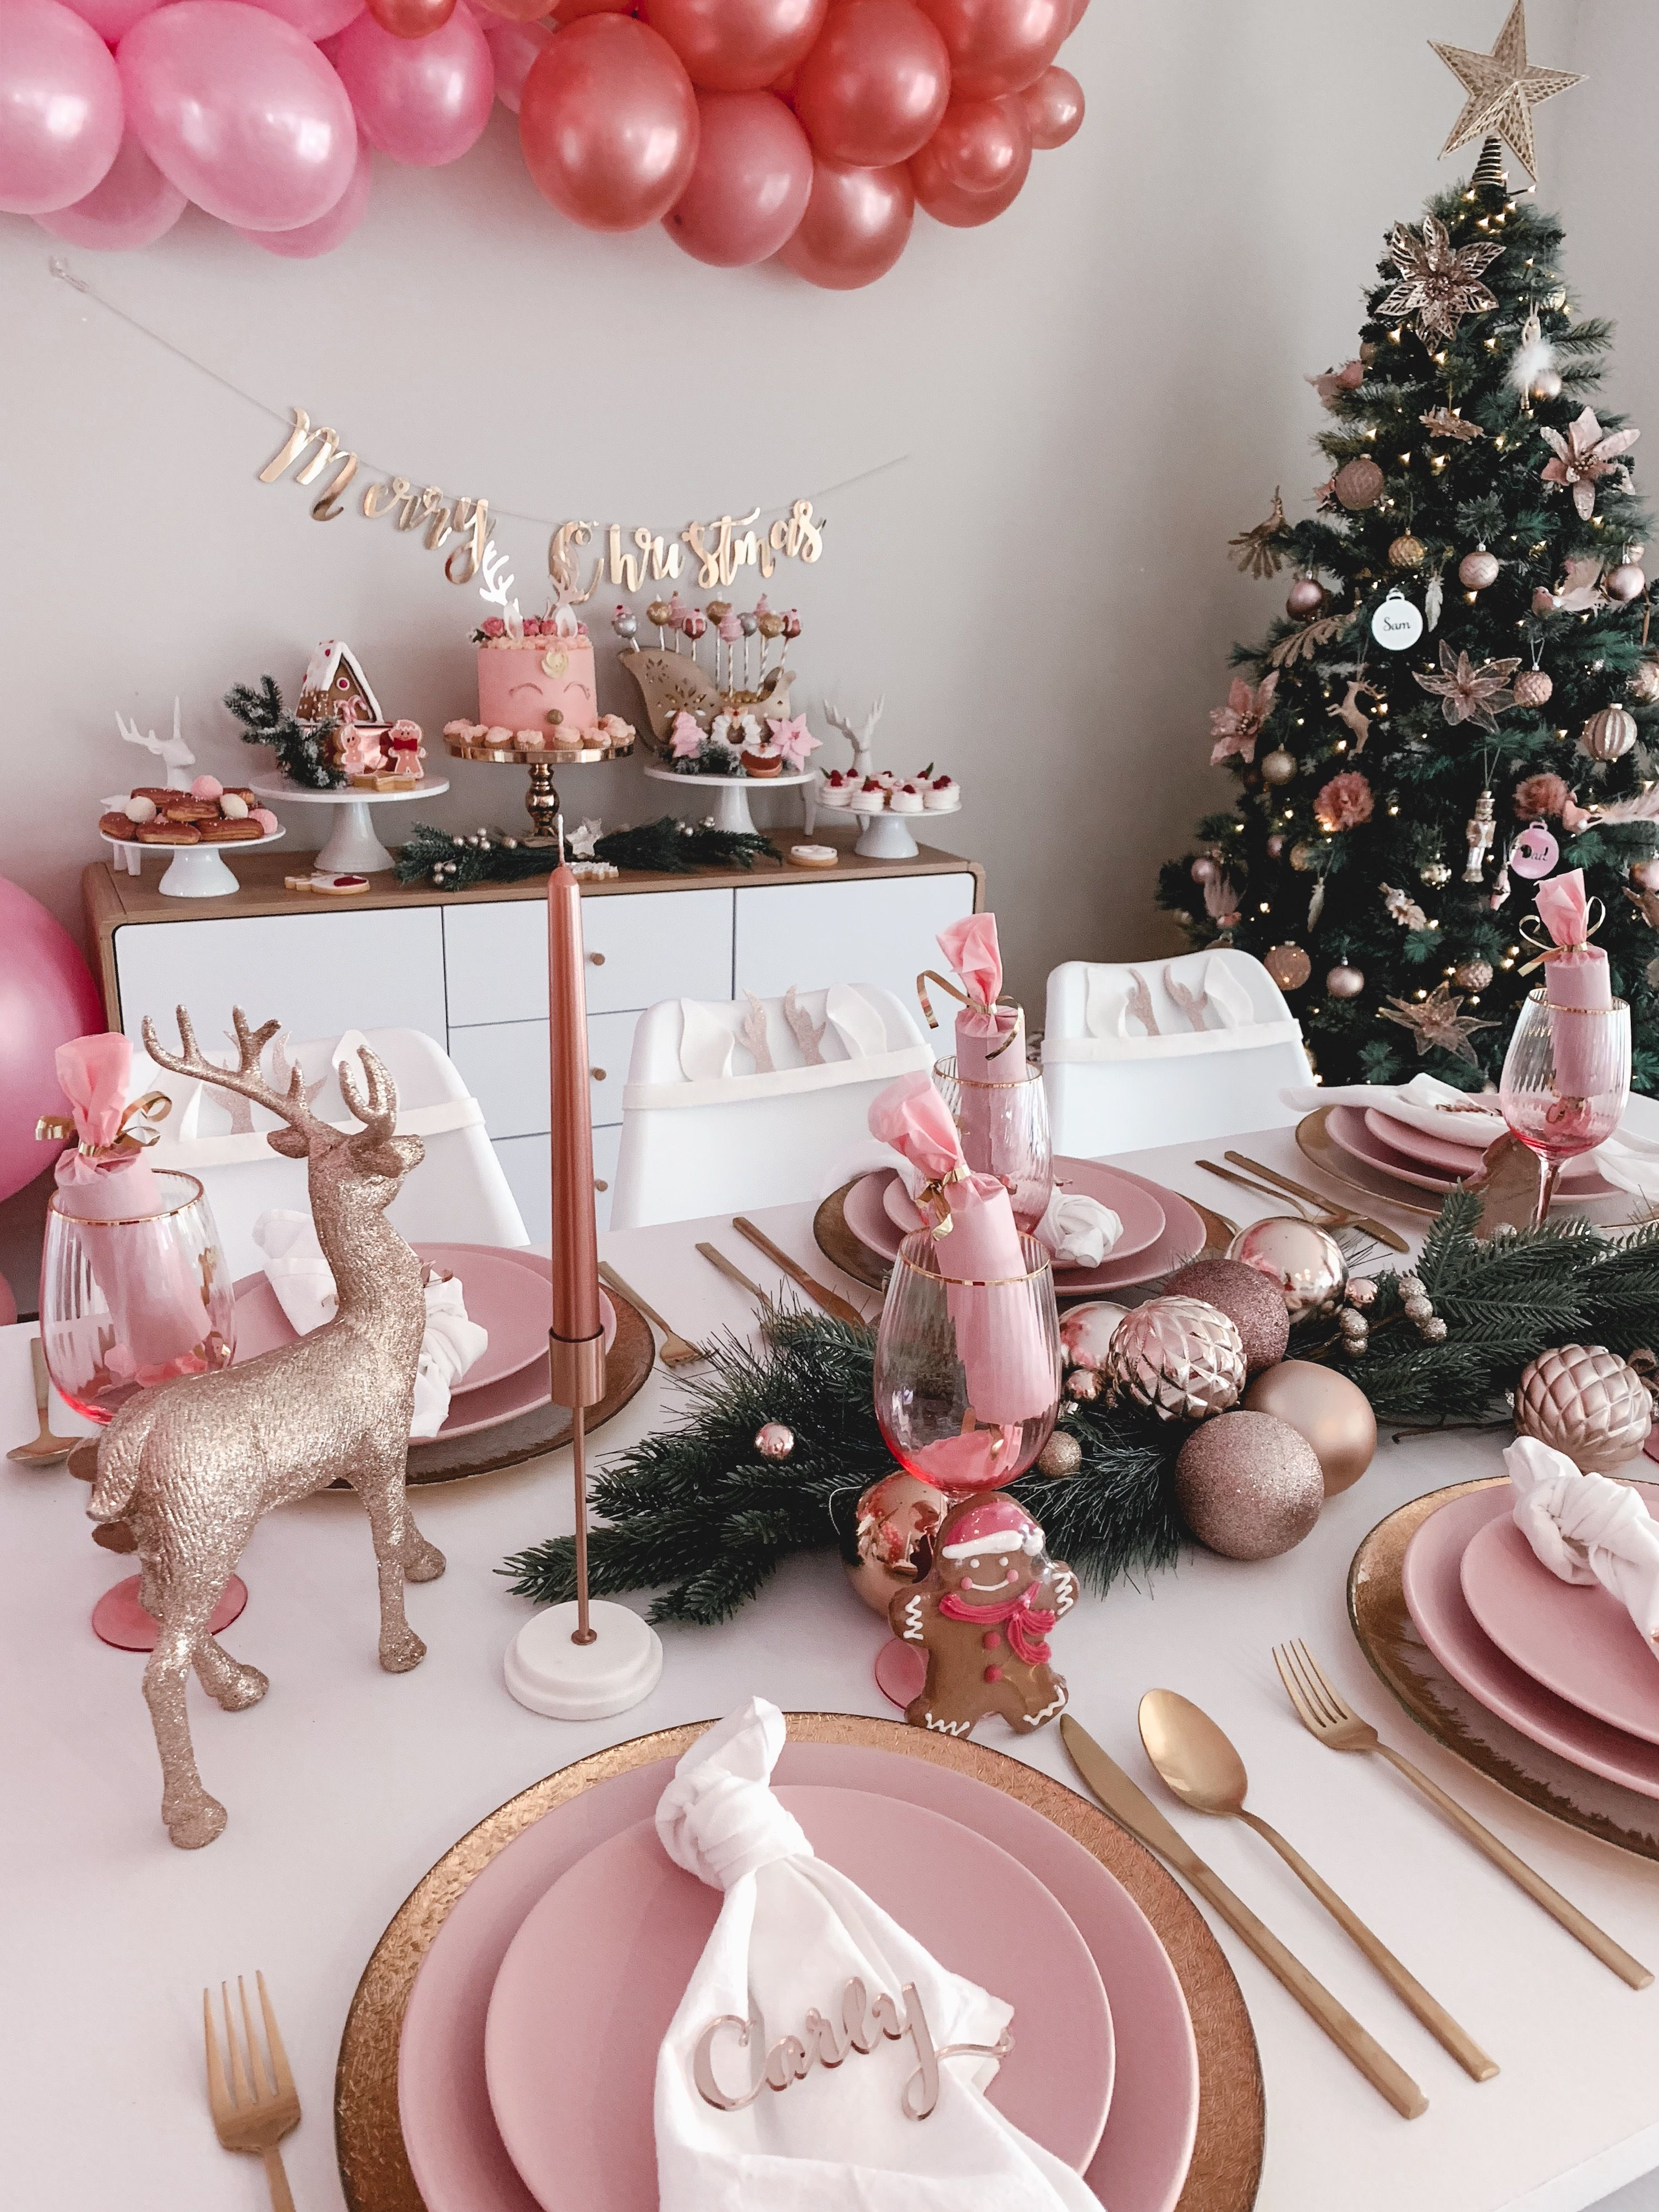 Blush Christmas Party Rose Gold Christmas Pink Christmas Decorations Pink Christmas Table